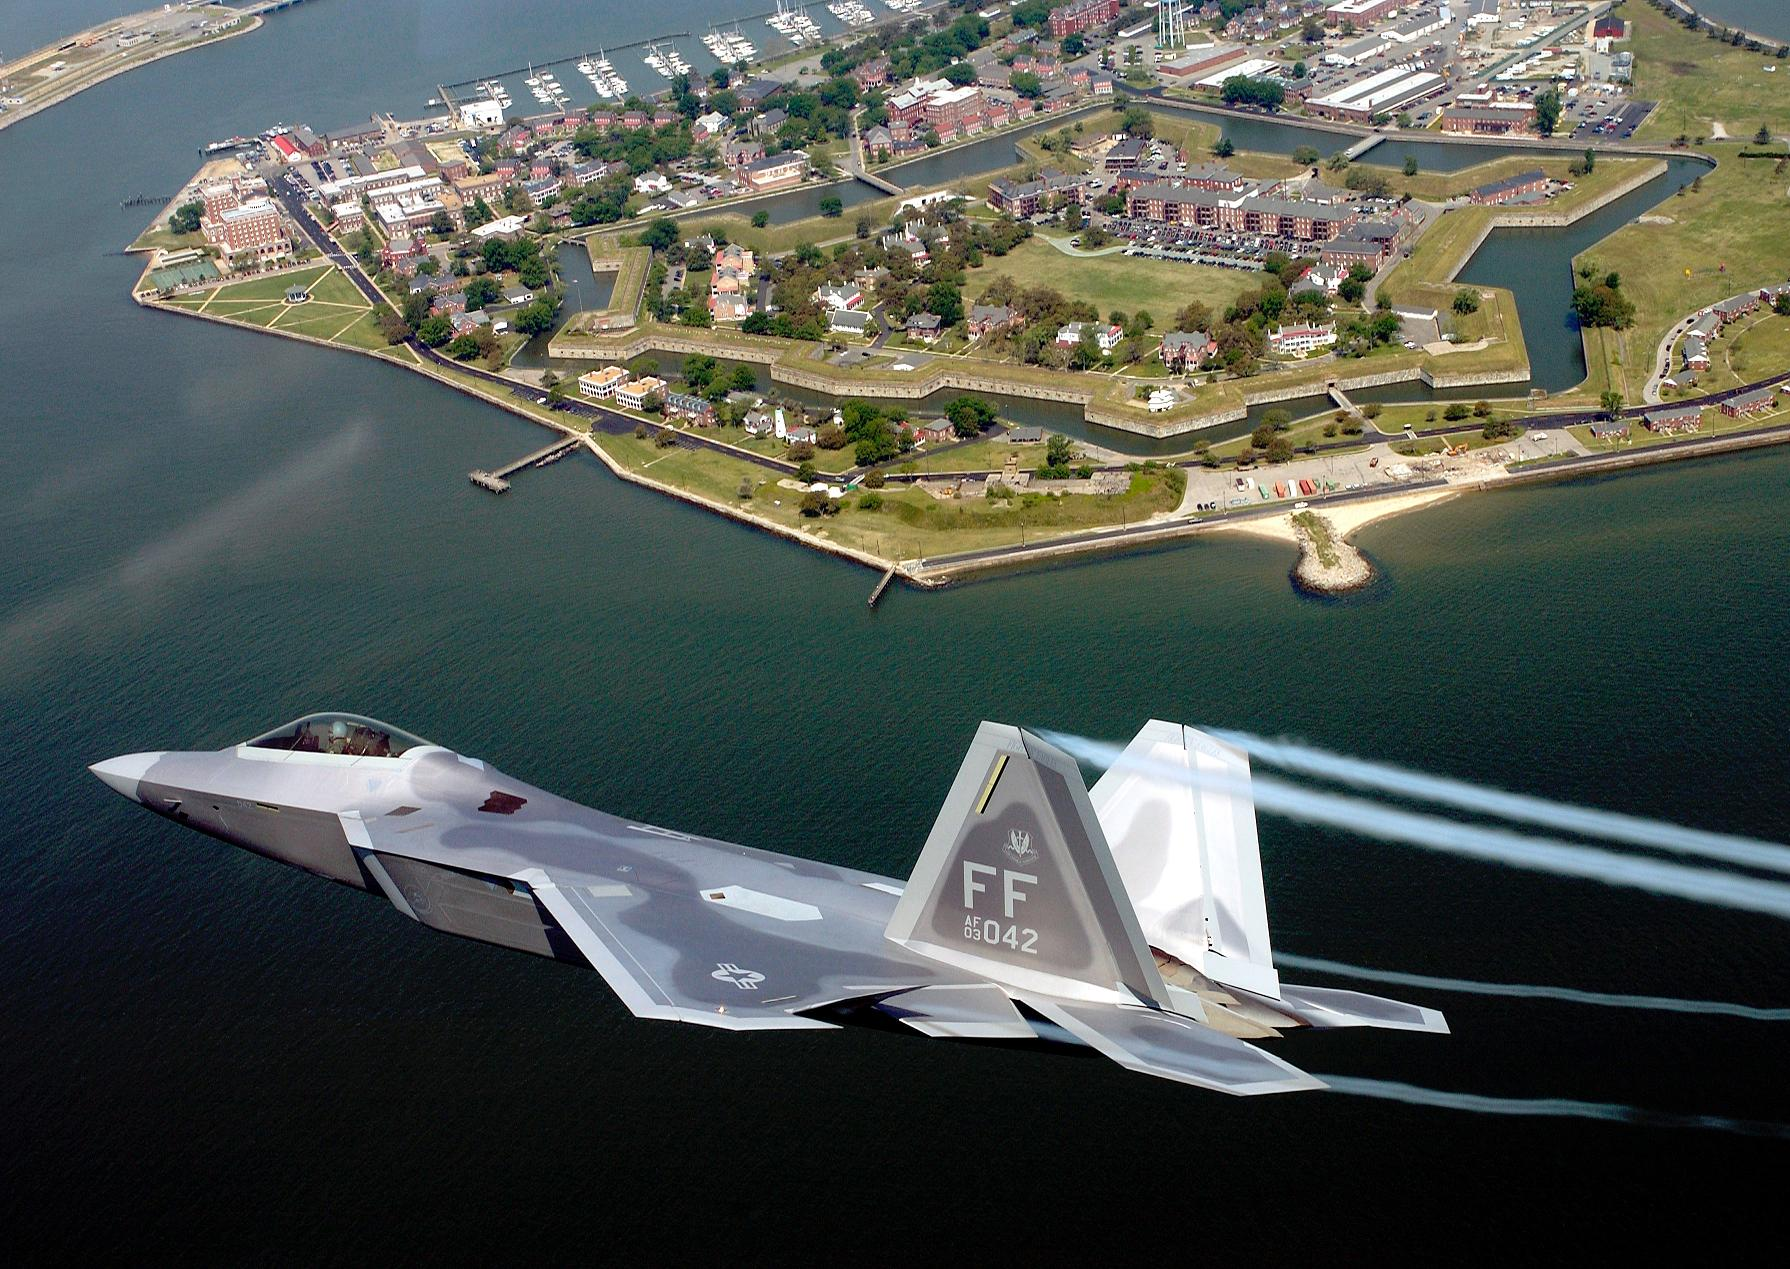 F-22A Raptor - F-22A Raptor banking right over a coast.